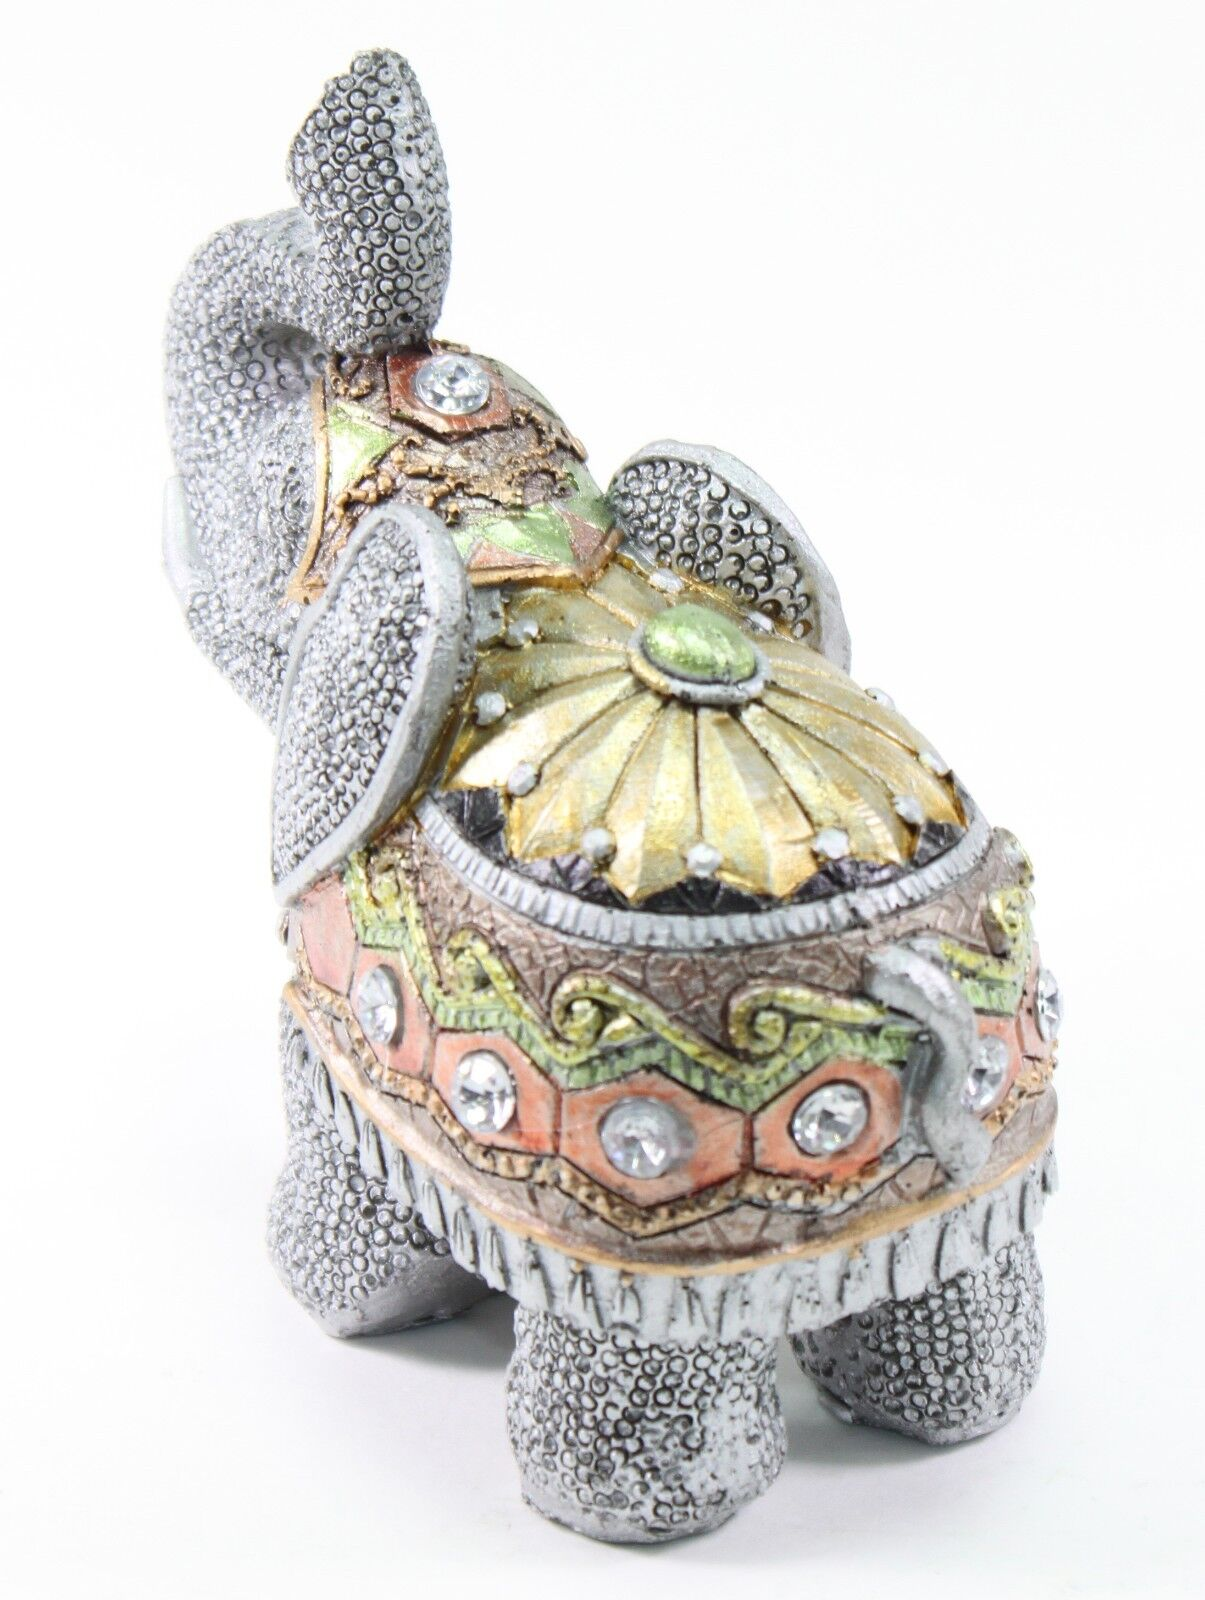 Feng Shui 5 Gray Elephant Trunk Statue Lucky Figurine Gift Home Decor Ebay